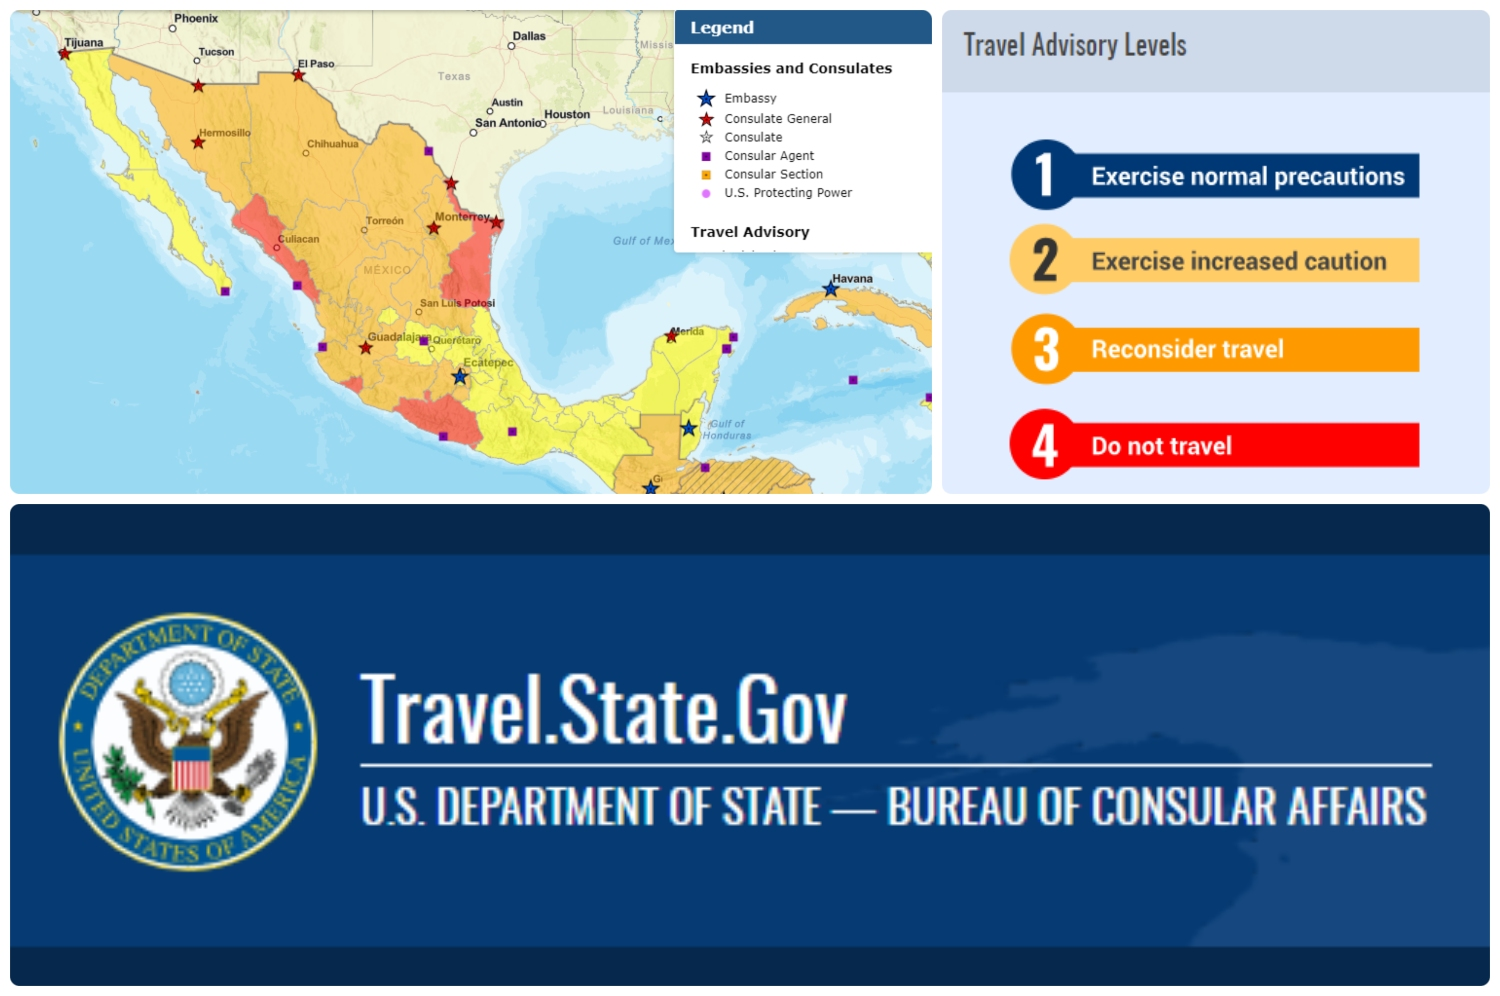 Visit the US Department of State website for a map and detailed travel warnings and safety information.